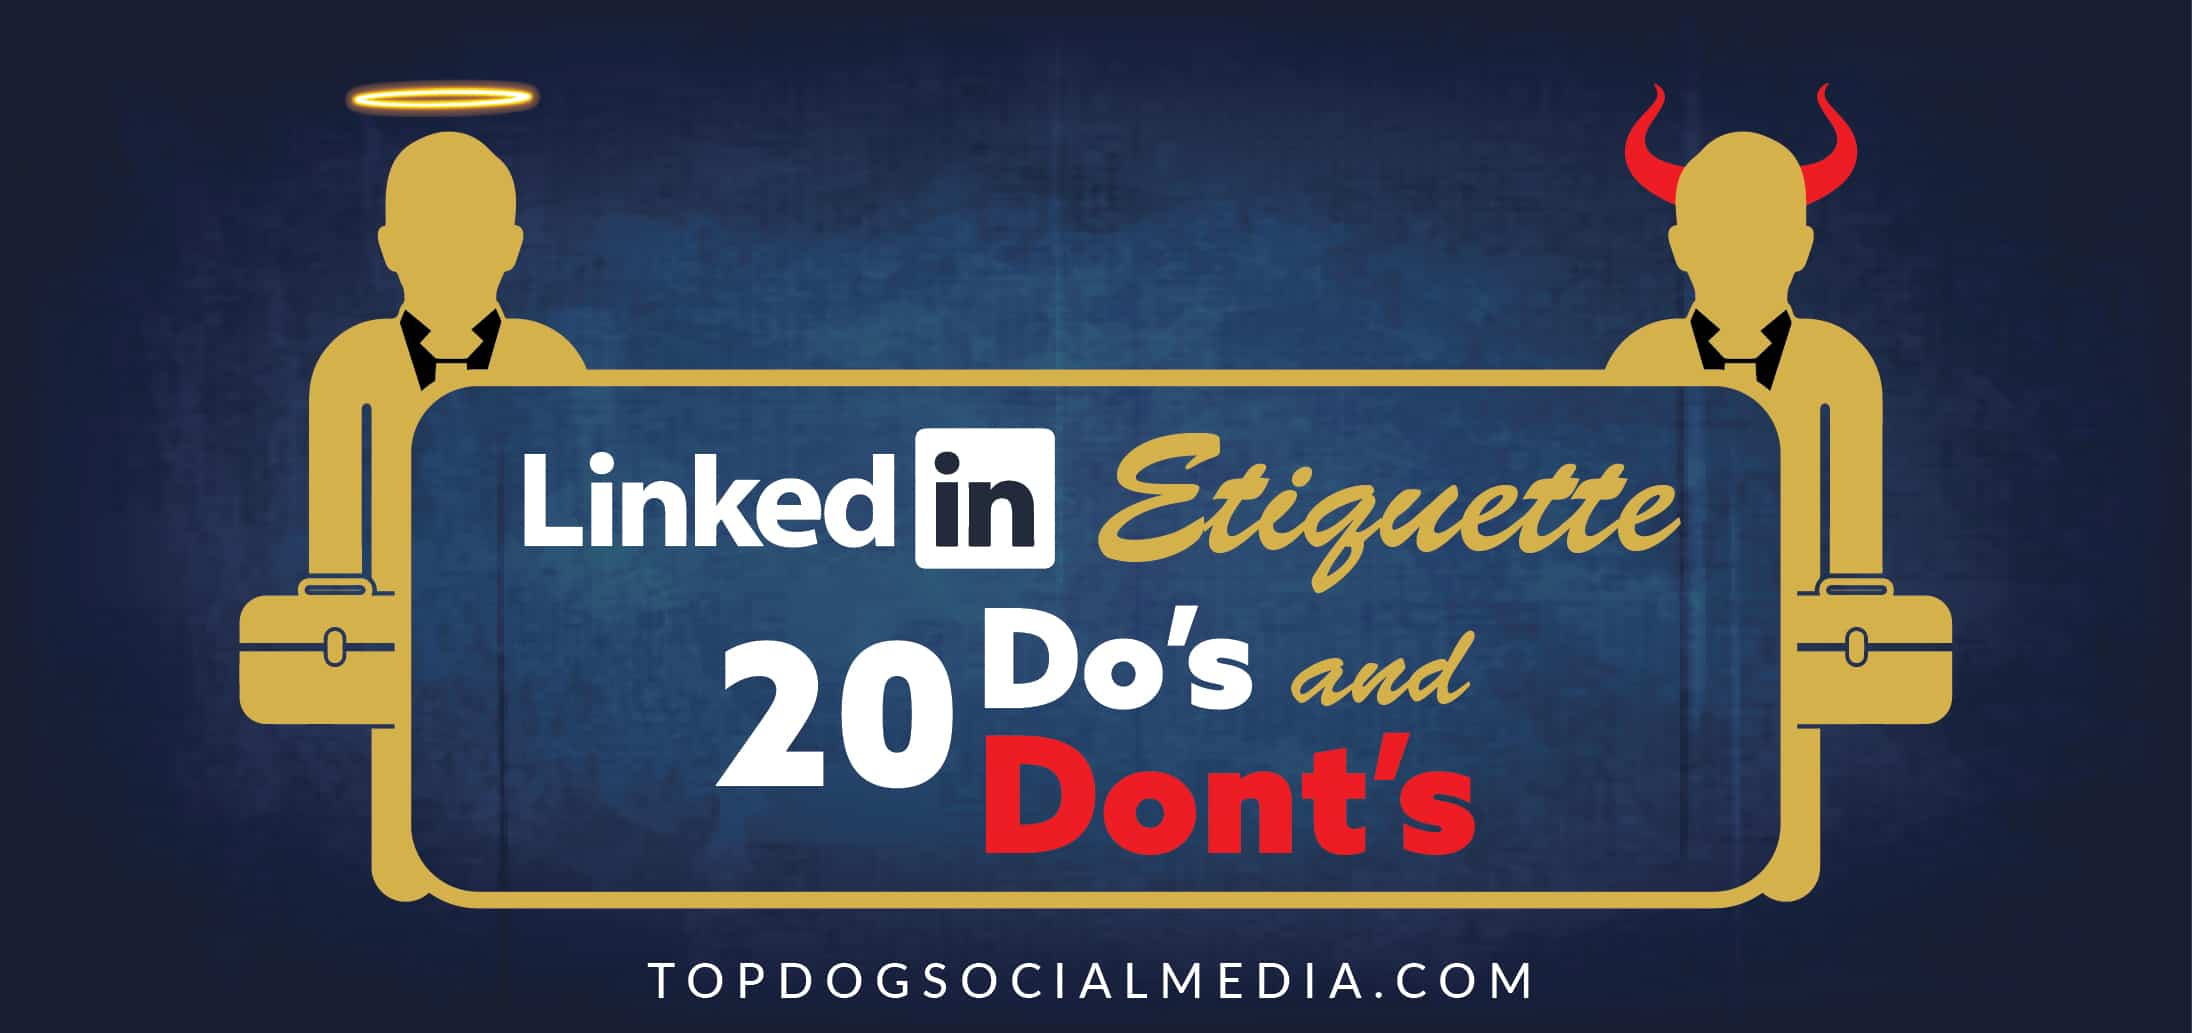 LinkedIn Etiquette Guide: 20 Do's & Don'ts [INFOGRAPHIC]